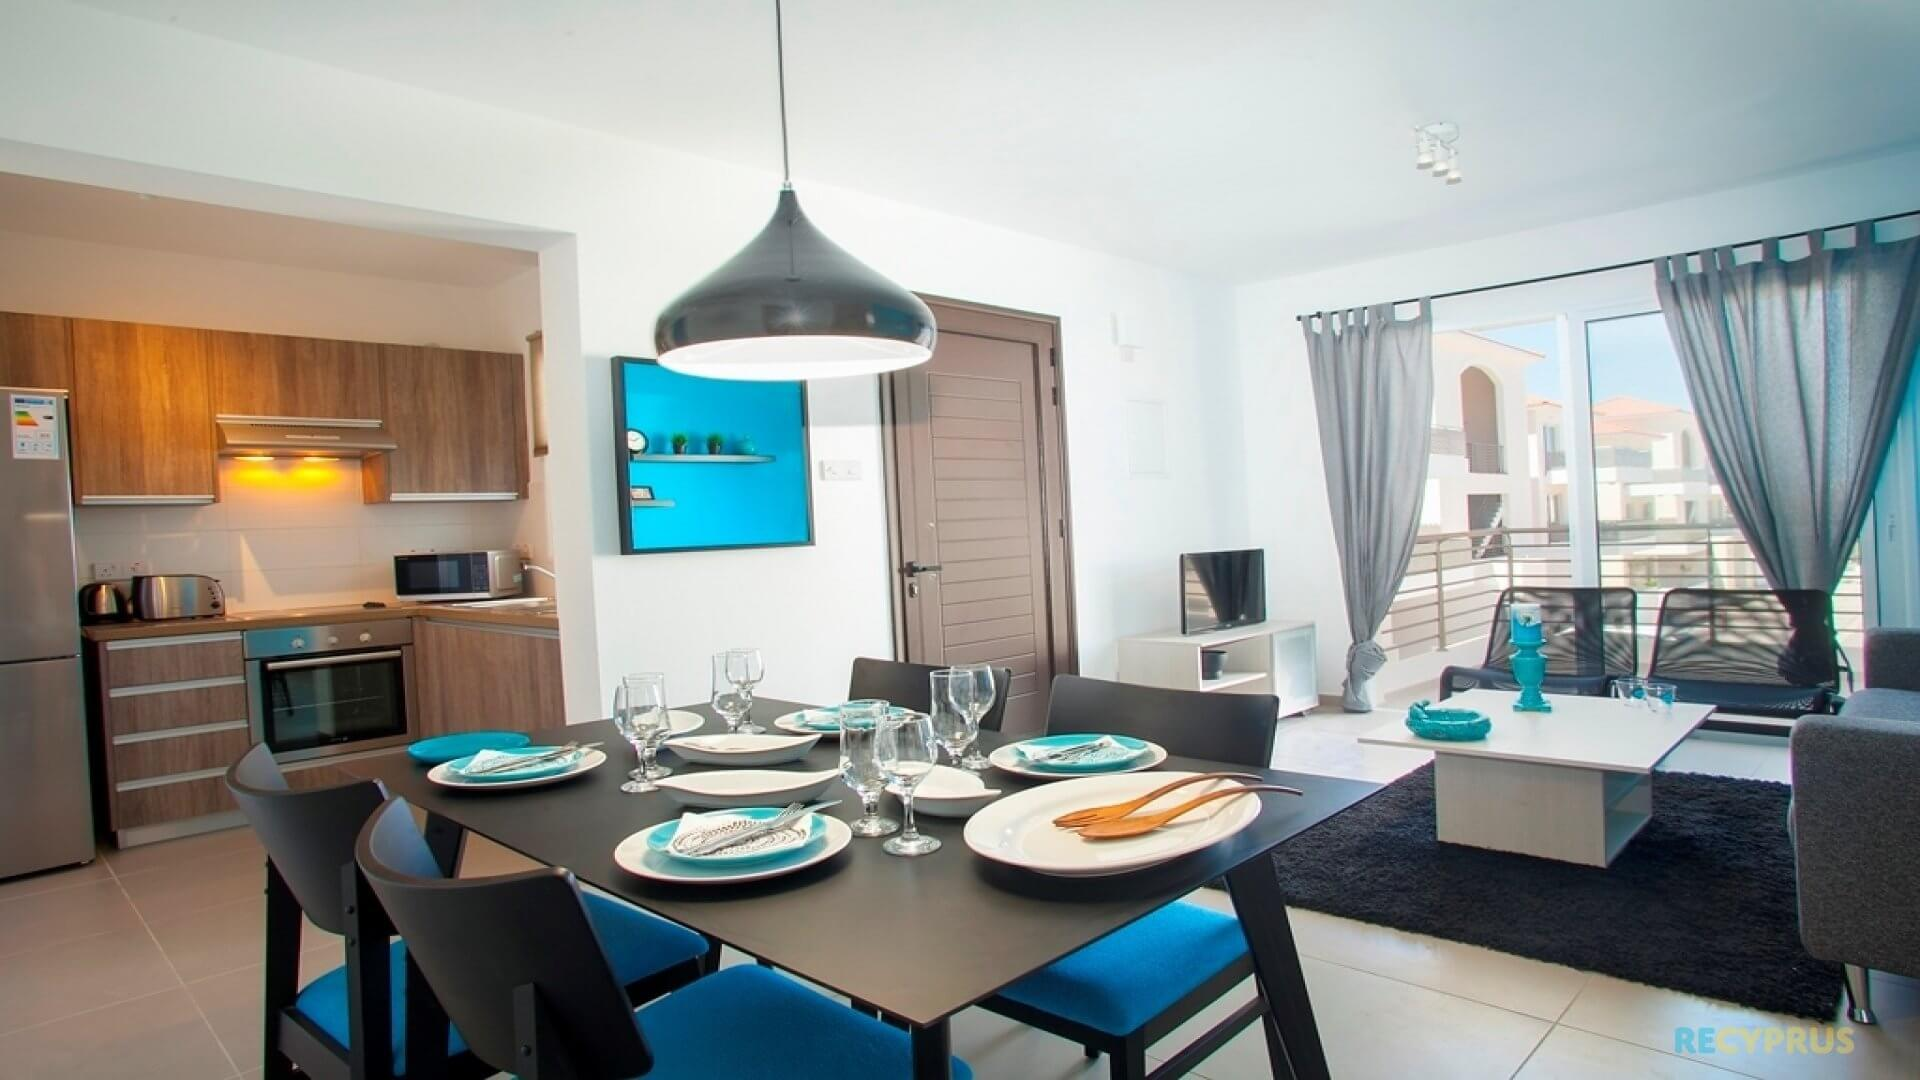 Apartment for sale Kapparis Famagusta Cyprus 3 3443